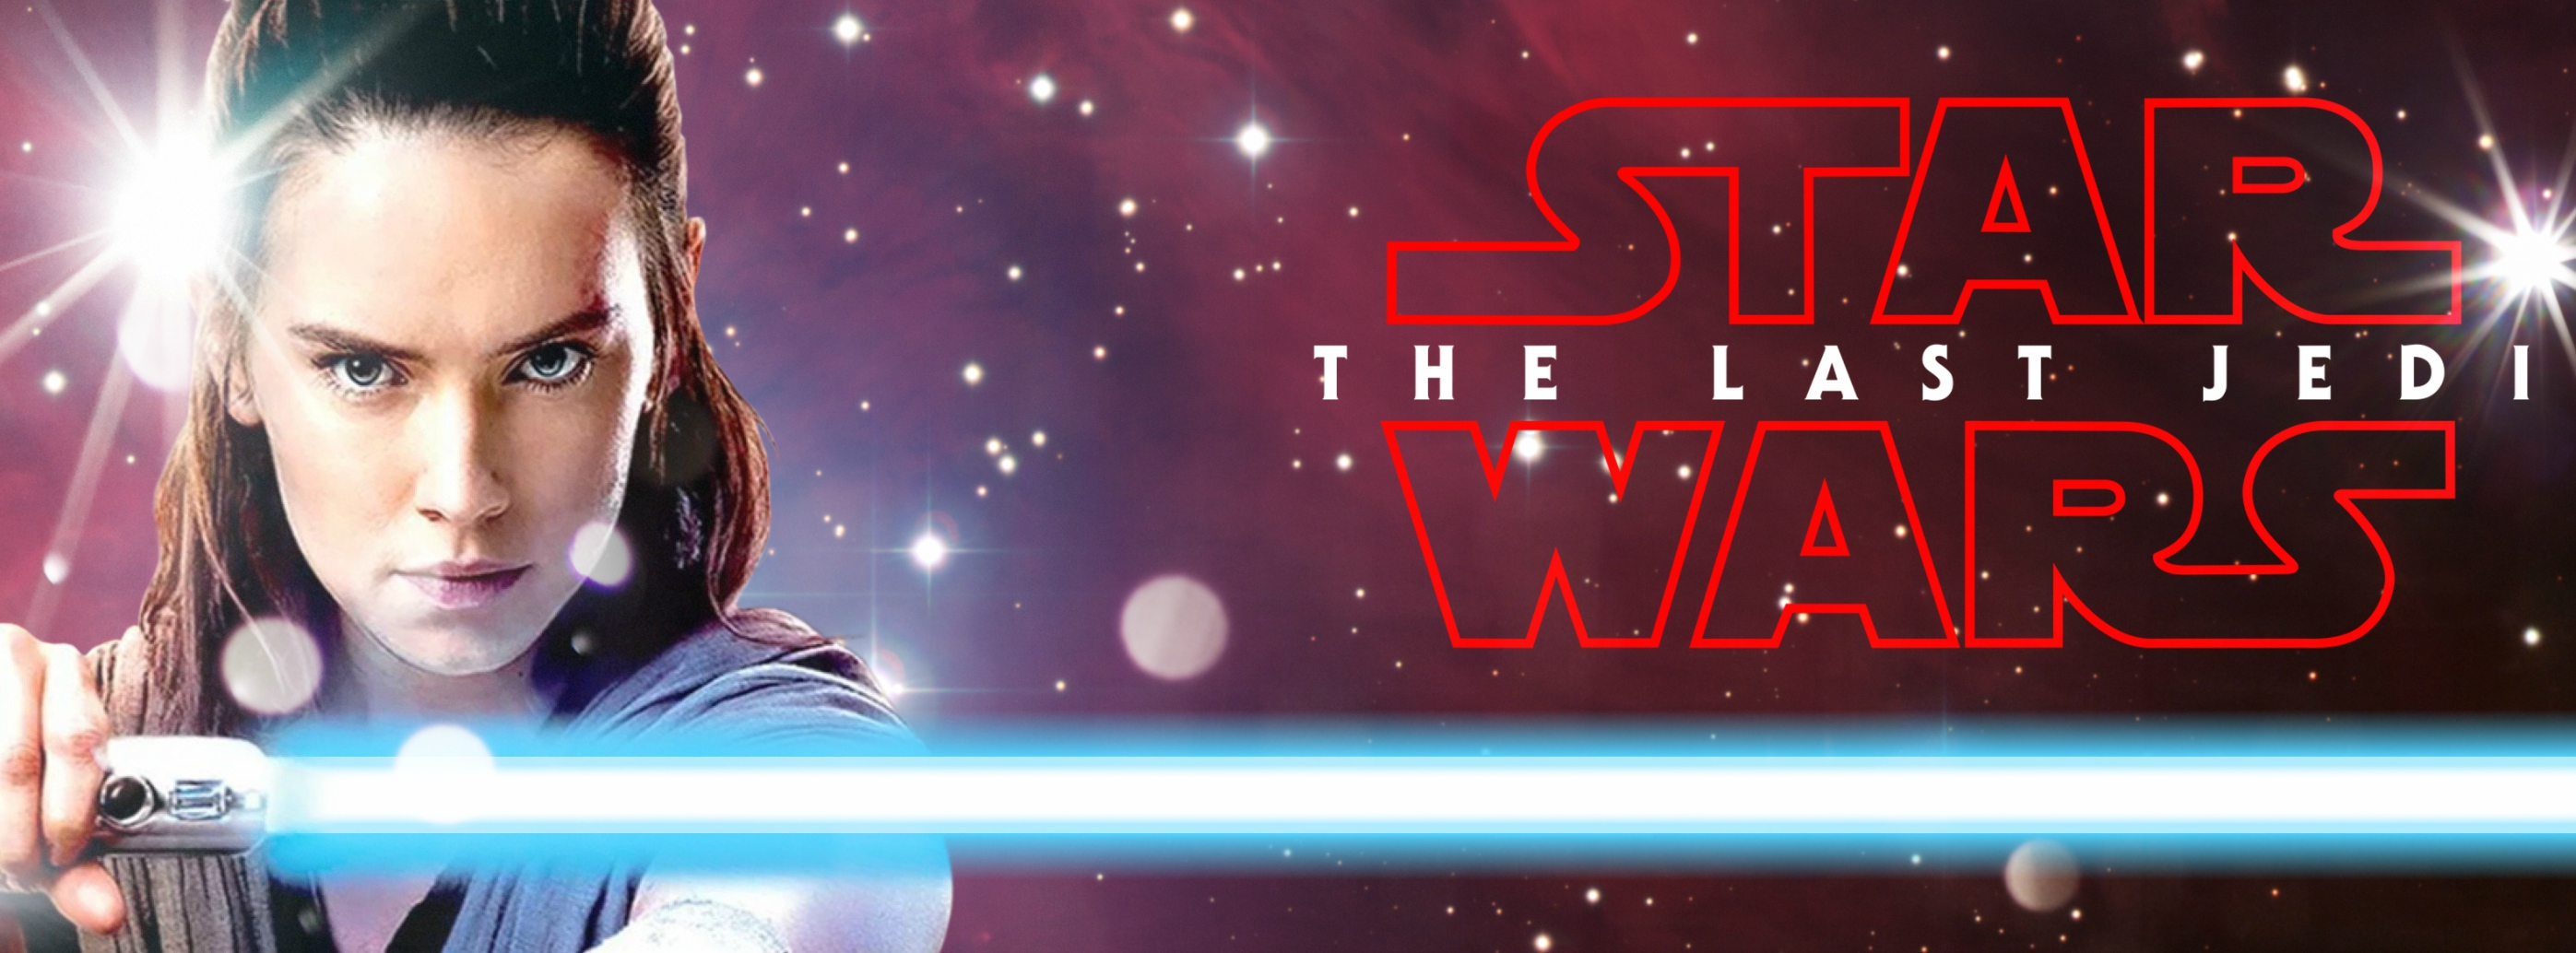 Digitale Abri's promoten the Last Jedi